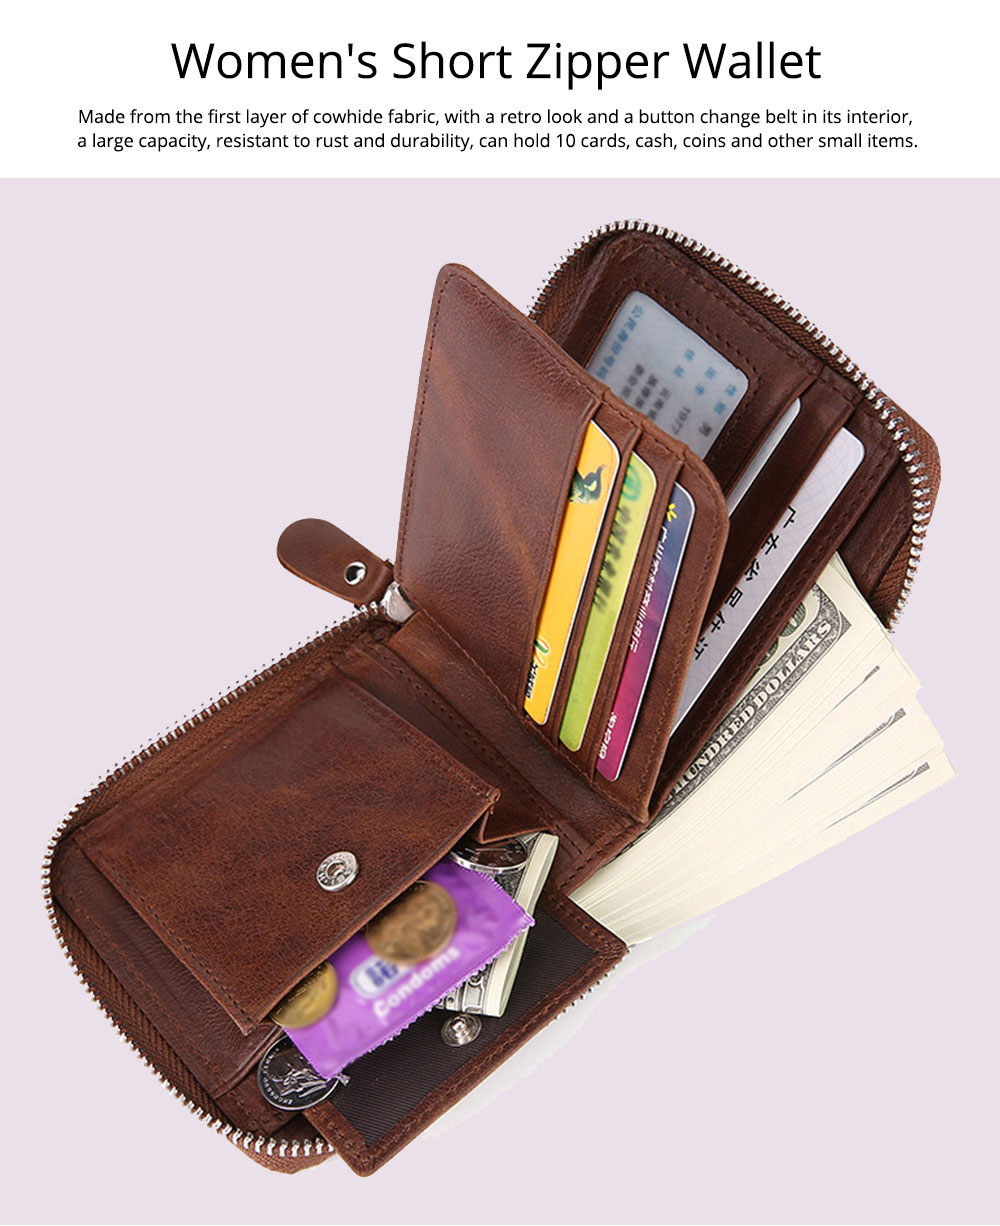 Women's Short Zipper Wallet, Korean Casual Anti-magnetic Clutch for Ladies, Fashion New Leather Coin Purse 0